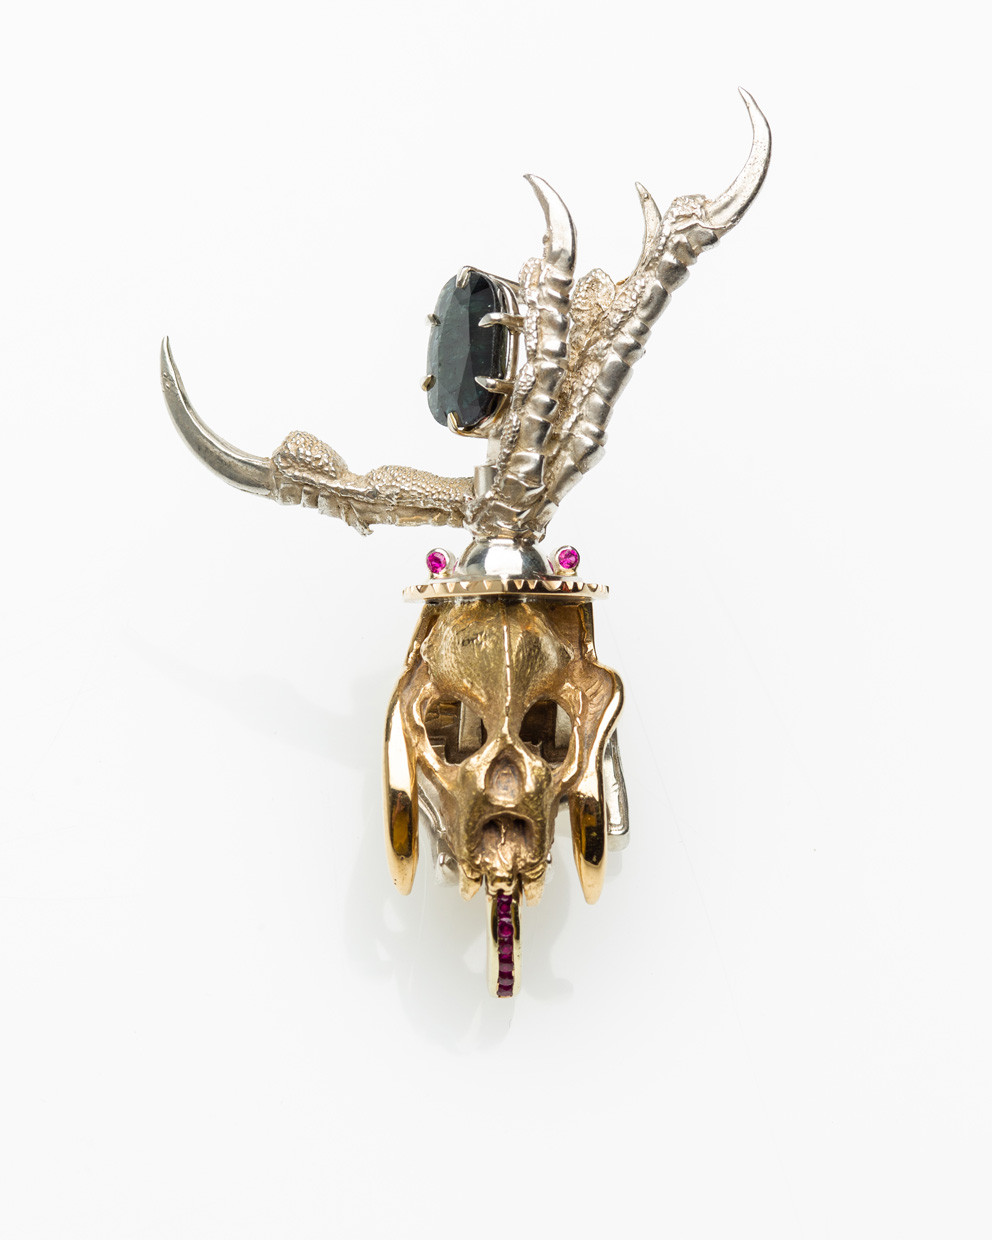 Bat Skull (Hairclip), 18 K. yellow gold, sterling silver, corundum, synthetic ruby sculpture by Lucas Pointon.